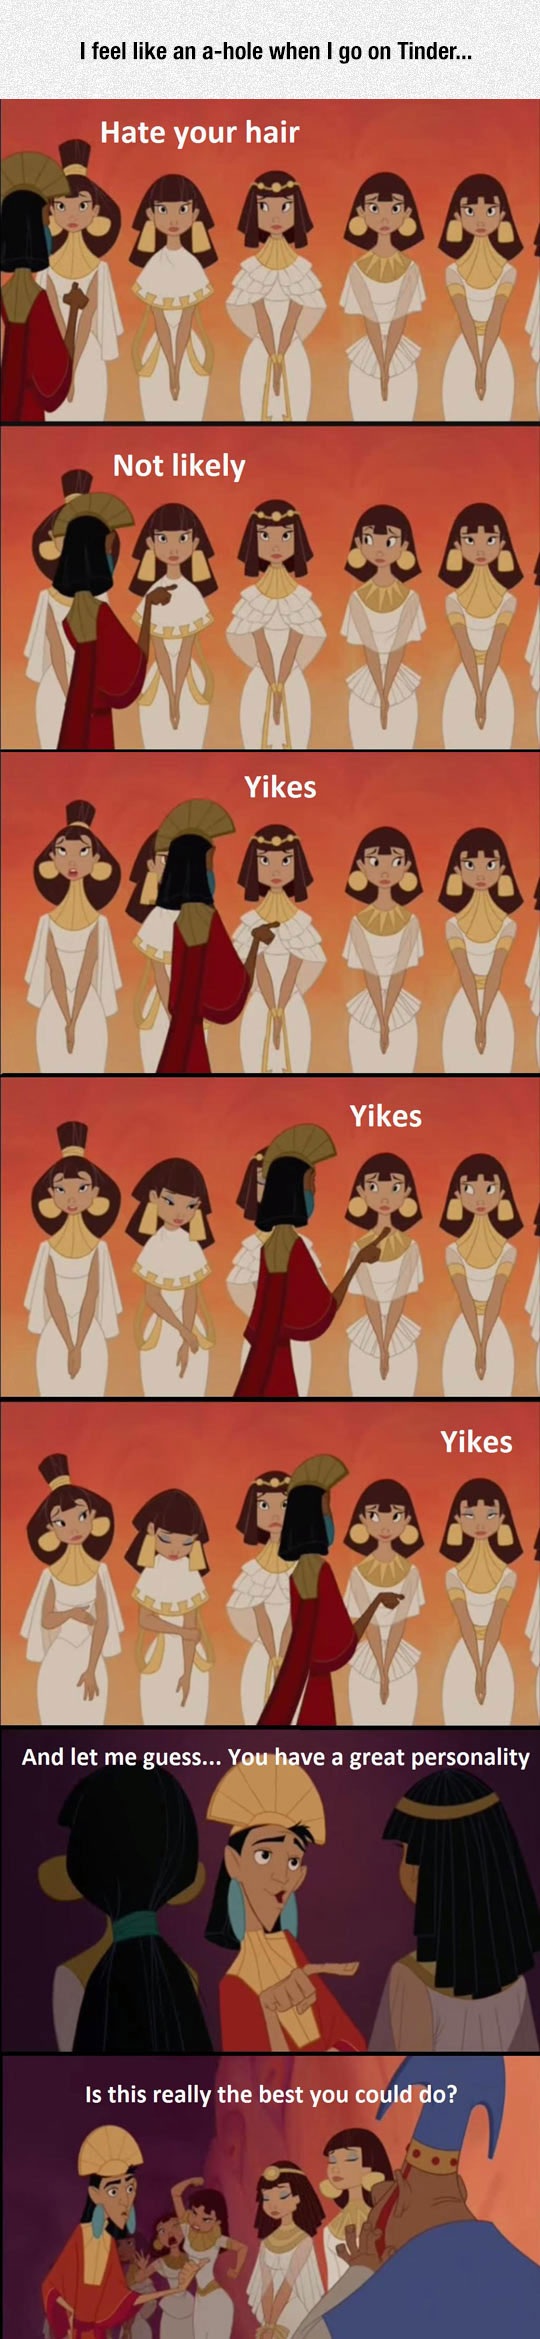 funny-kuzco-rejecting-girls-tinder-hair